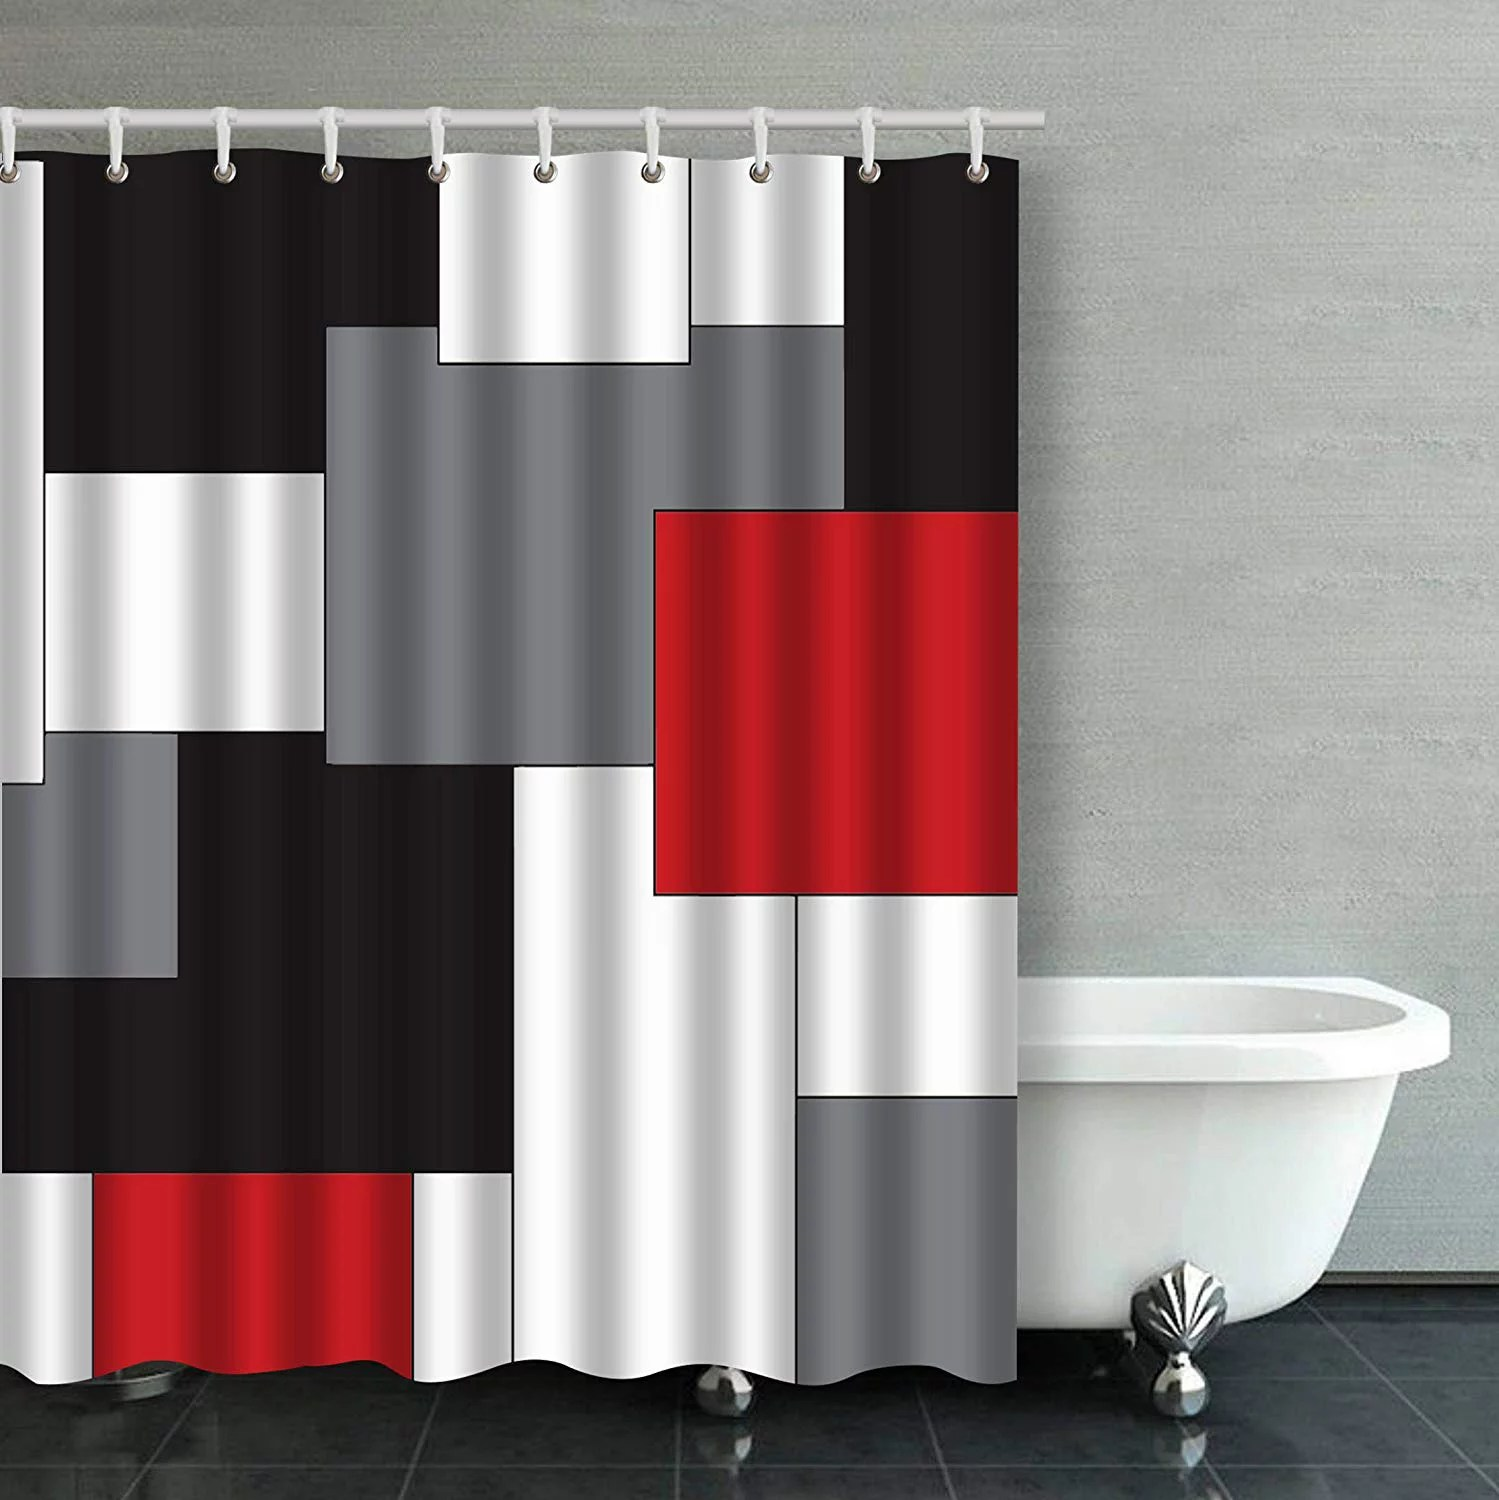 bpbop wavy vertical stripes red black white and grey bathroom shower curtain 60x72 inches